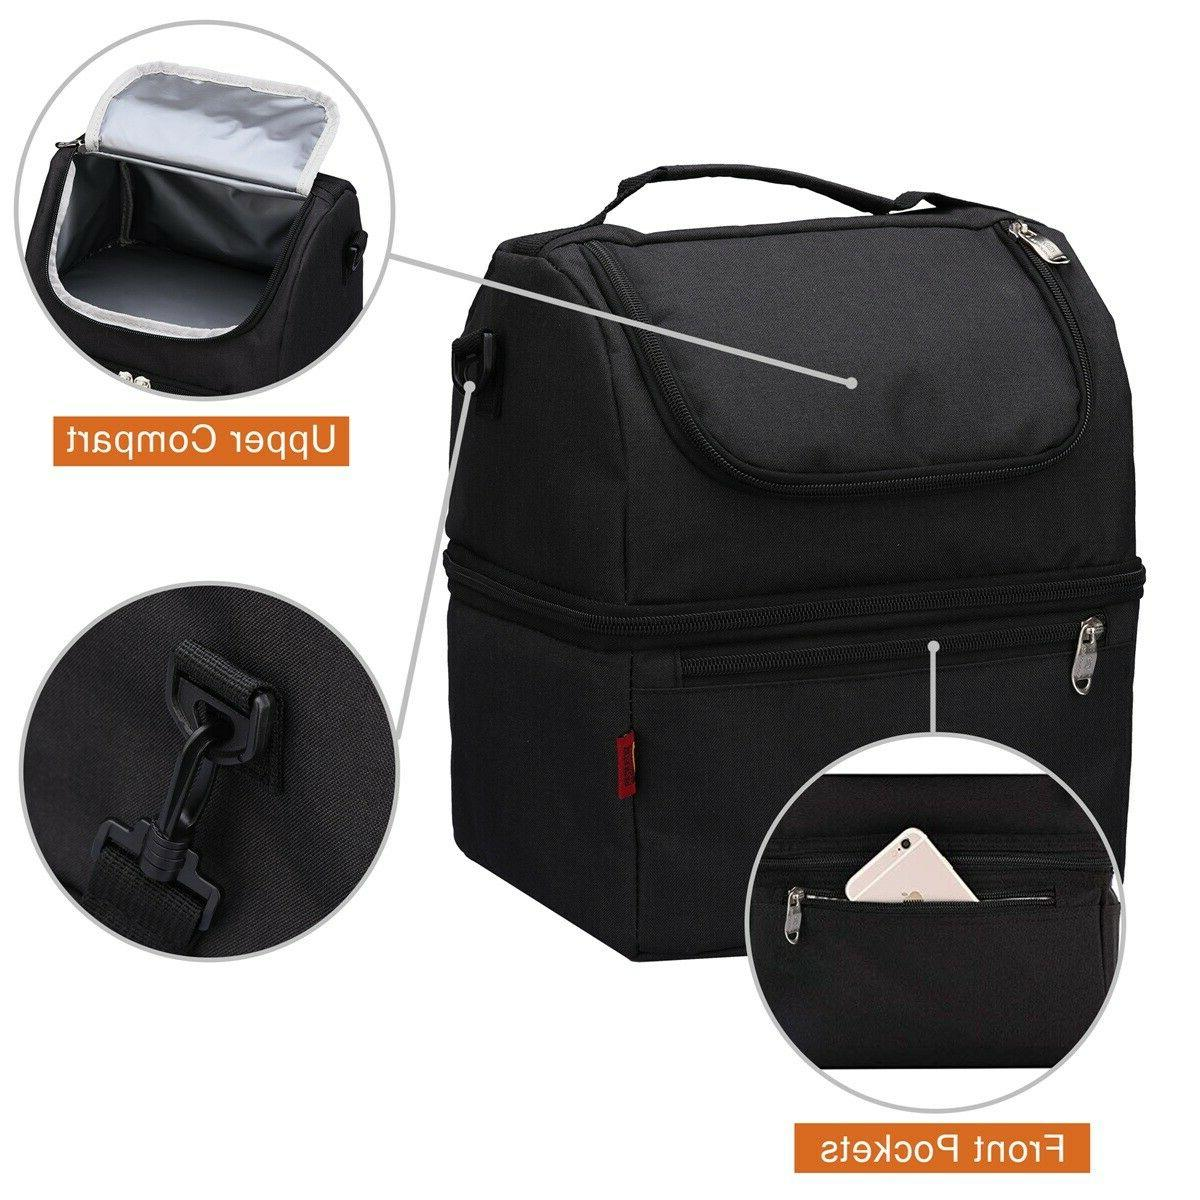 Adult Lunch Box Insulated Lunch Bag Large Tote Bag Double Do